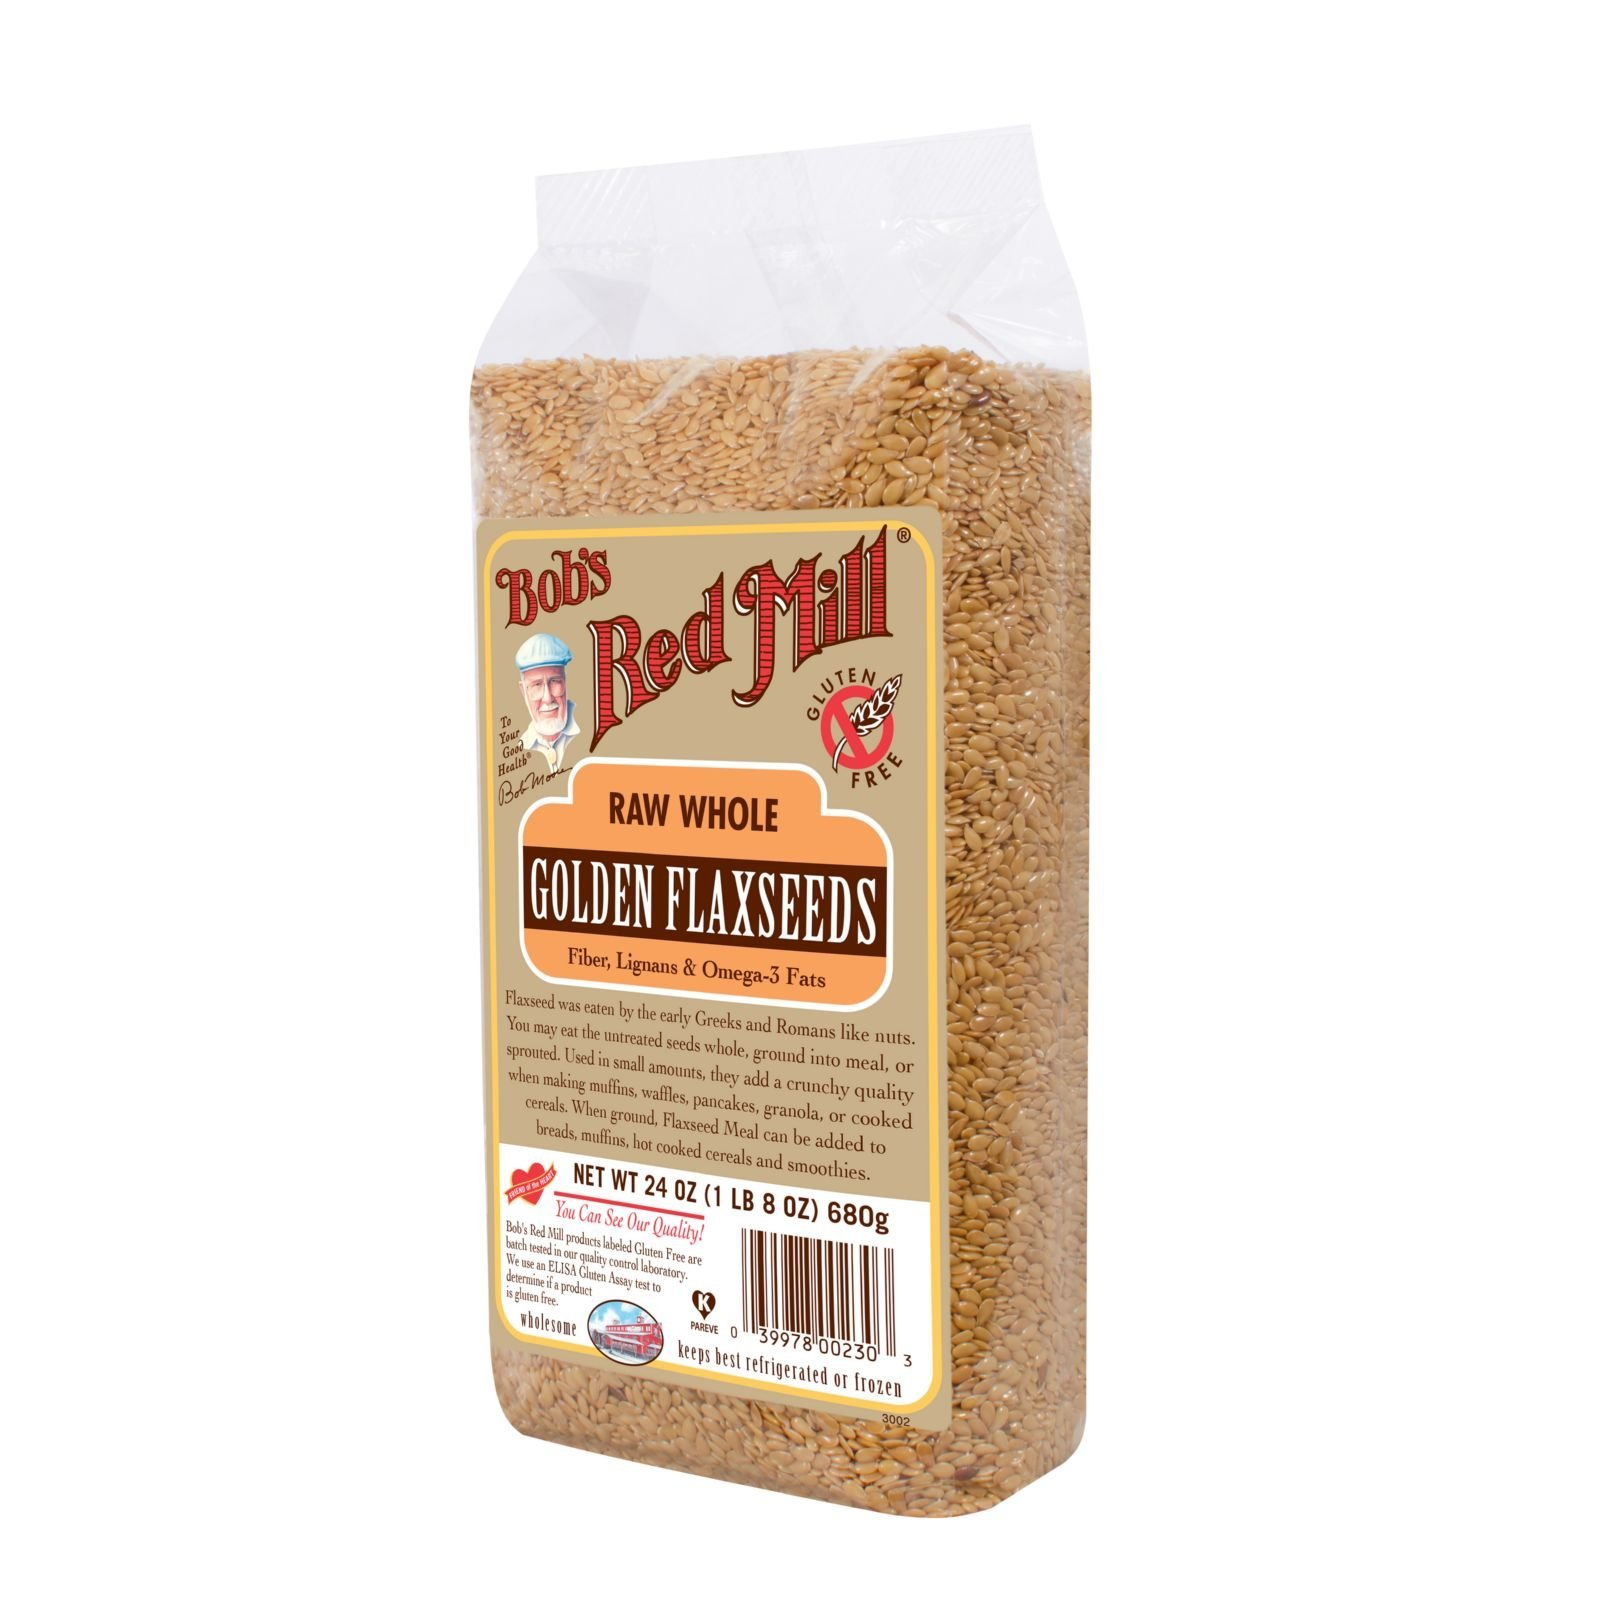 Bobs Red Mill Raw Whole Golden Flaxseed - 24 oz - Case of 4 - Gluten Free - Dairy Free - Wheat Free - Vegan